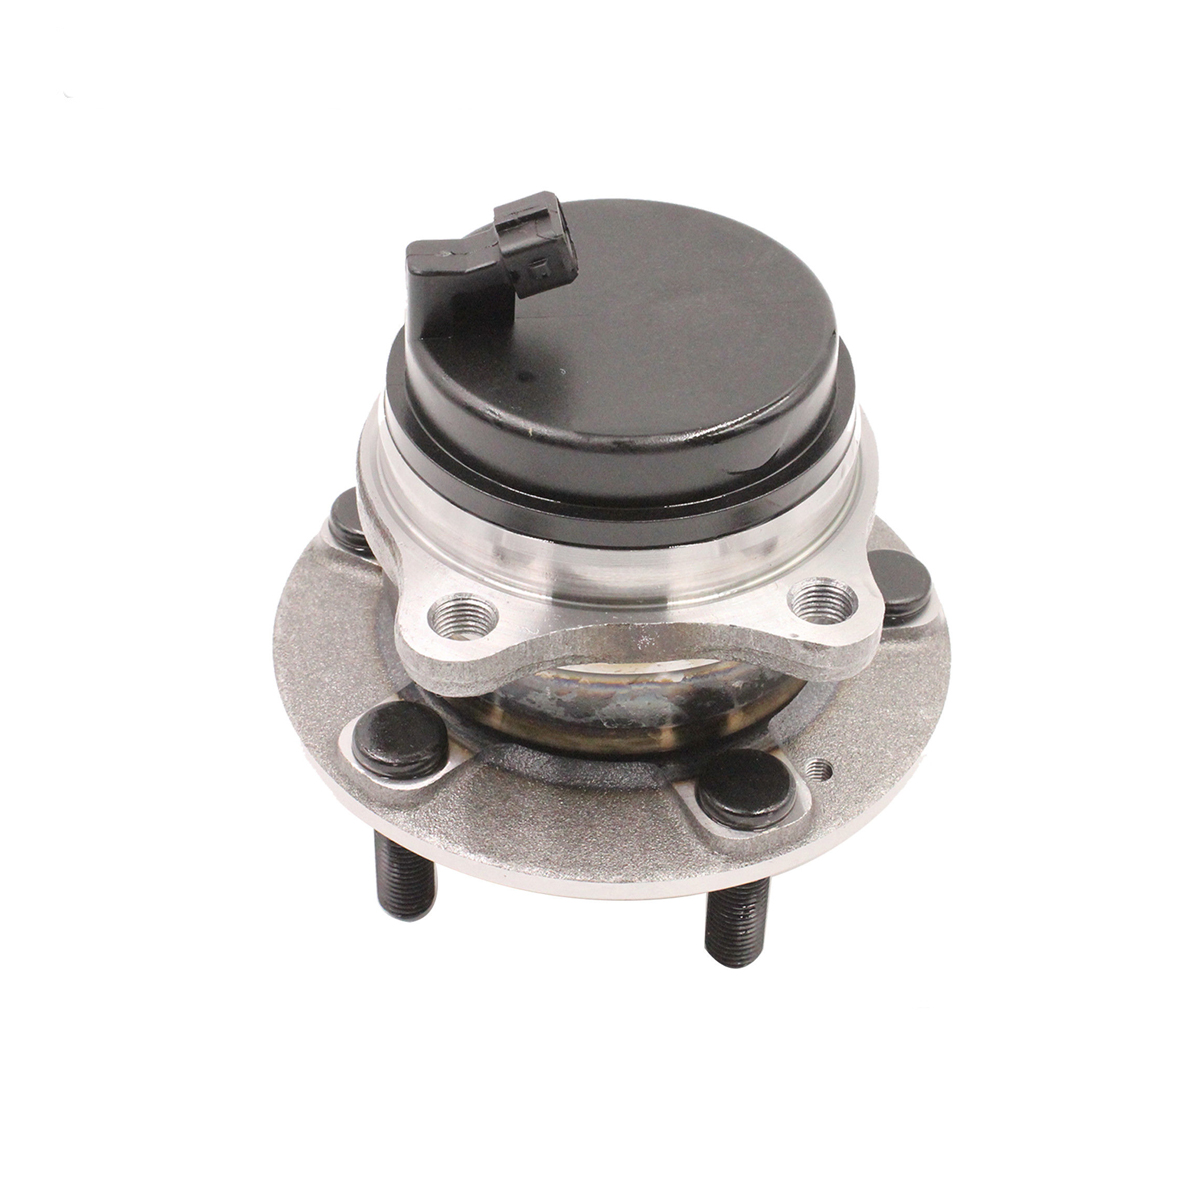 Detroit Axle - REAR Wheel Bearing and Hub Assembly - Driver or Passenger Side for 2015 2016 2017 2018 Kia Sedona